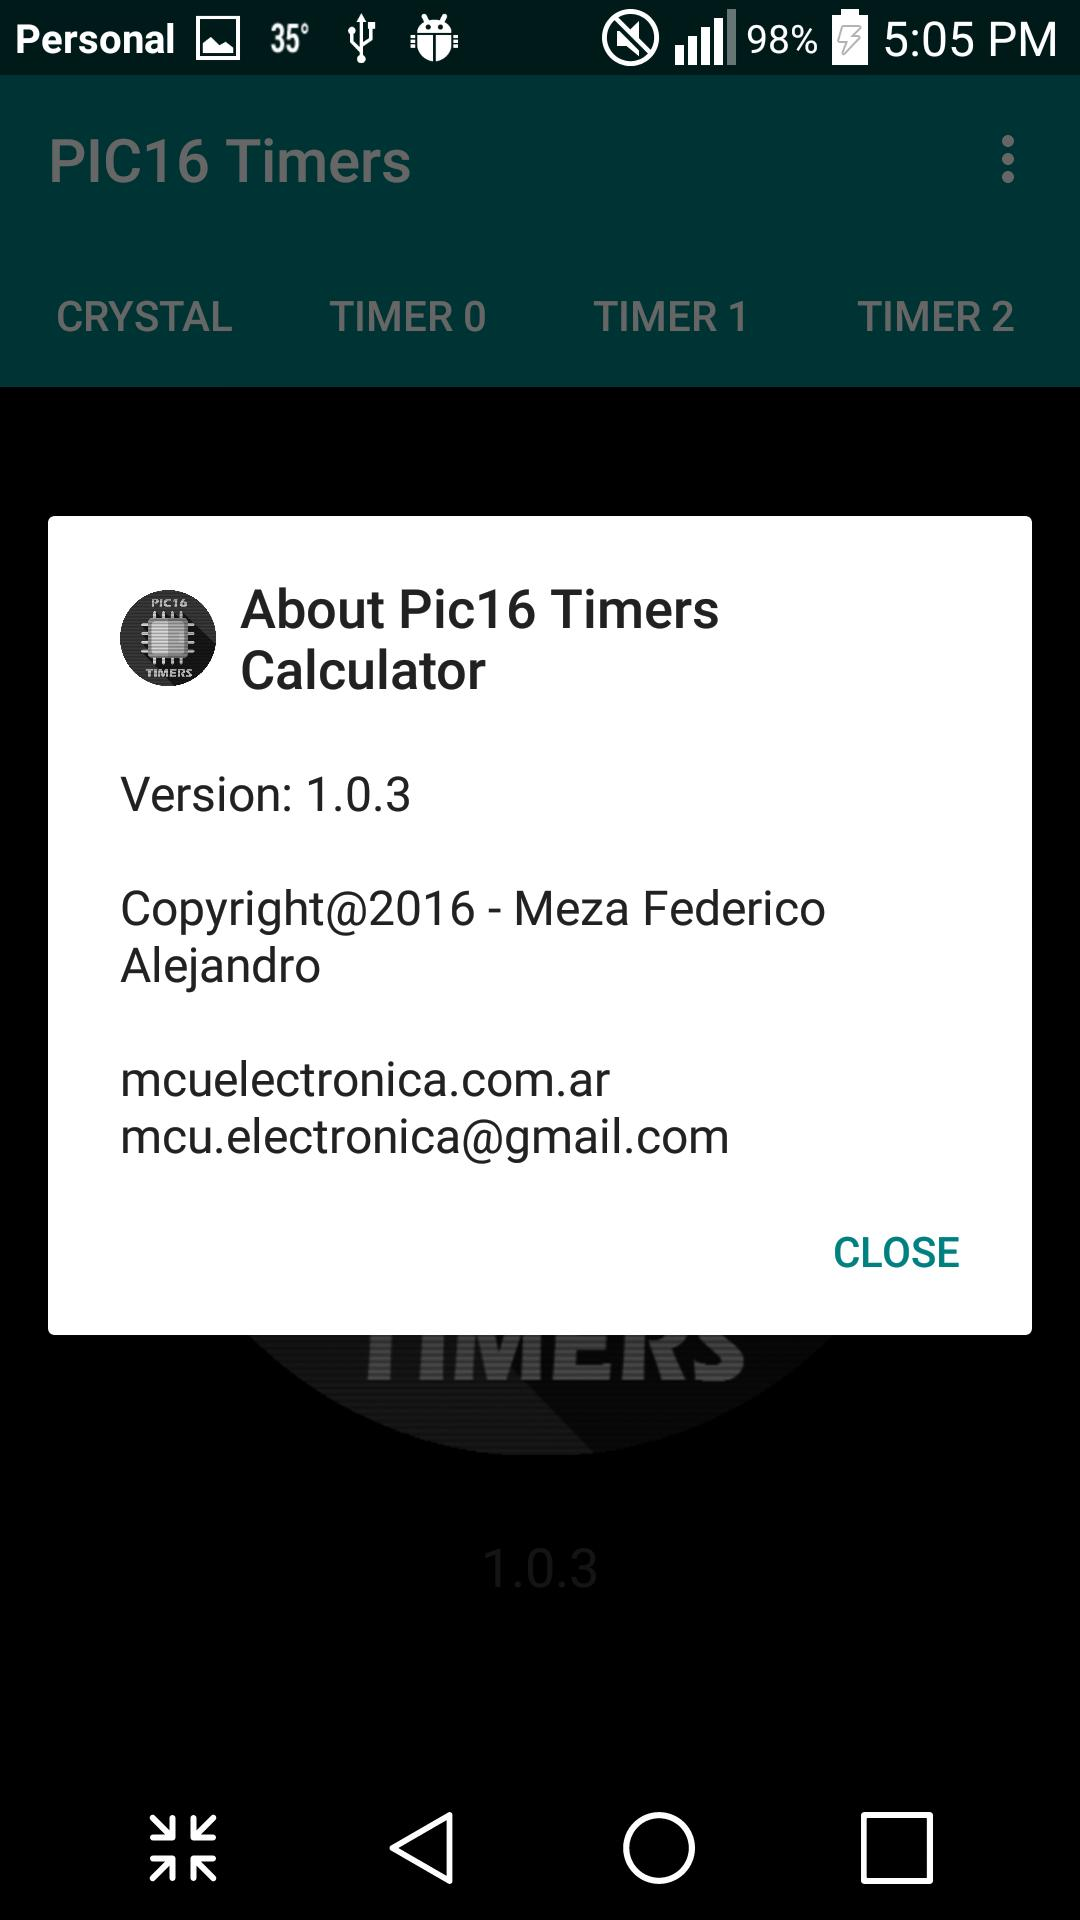 Pic16 Timers Calculator cho Android - Tải về APK